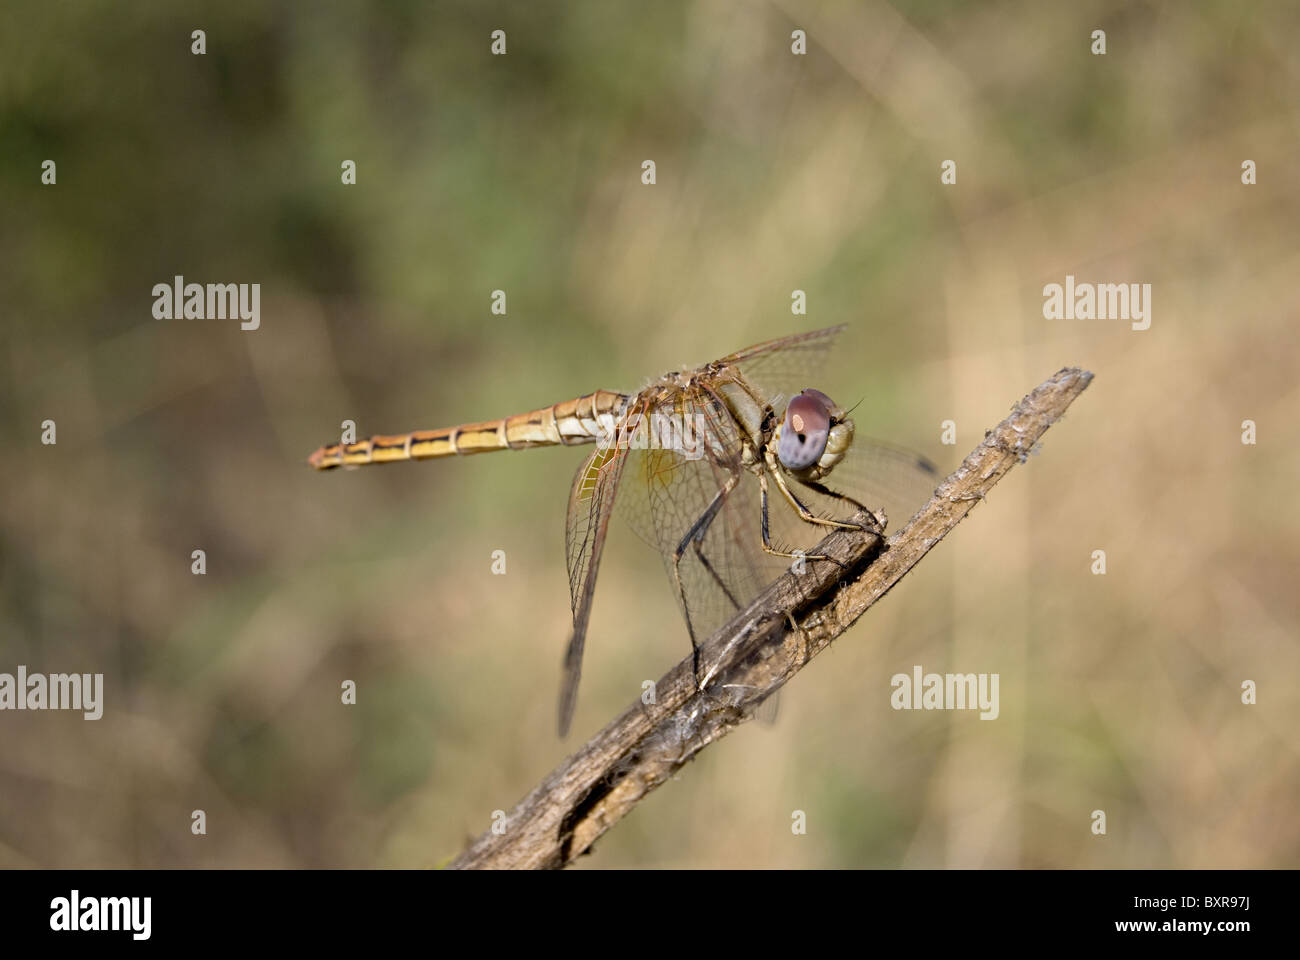 Crimson marsh glider, Scientific name: Trithemis aurora - Stock Image